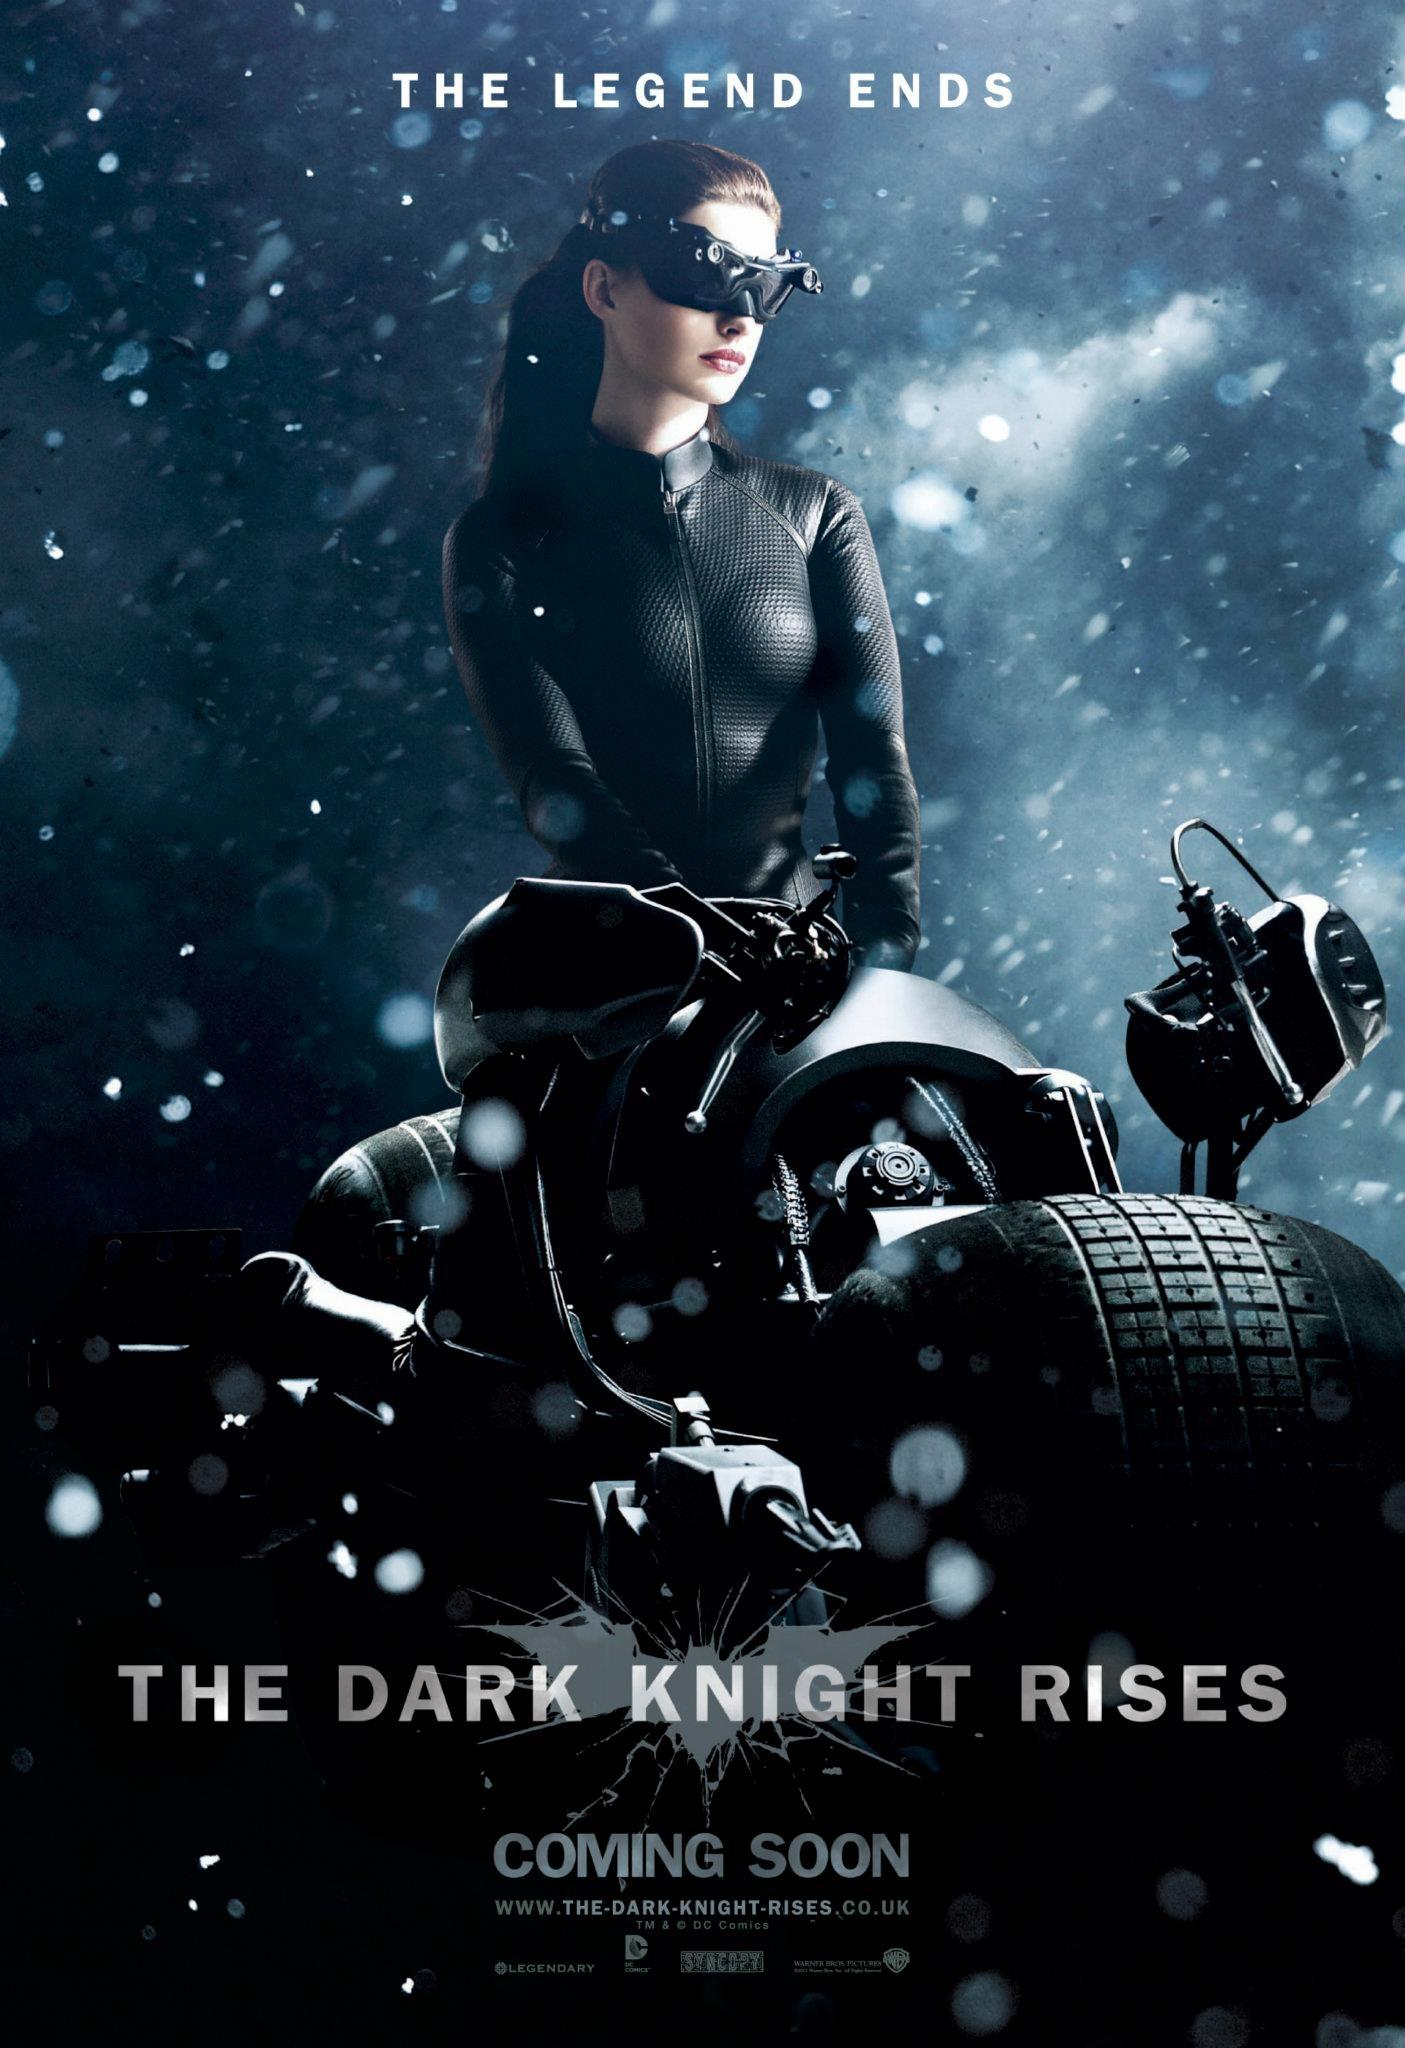 The Dark Knight Rises: Mega Image Sized Movie Poster - Internet Movie Poster Gallery Prix